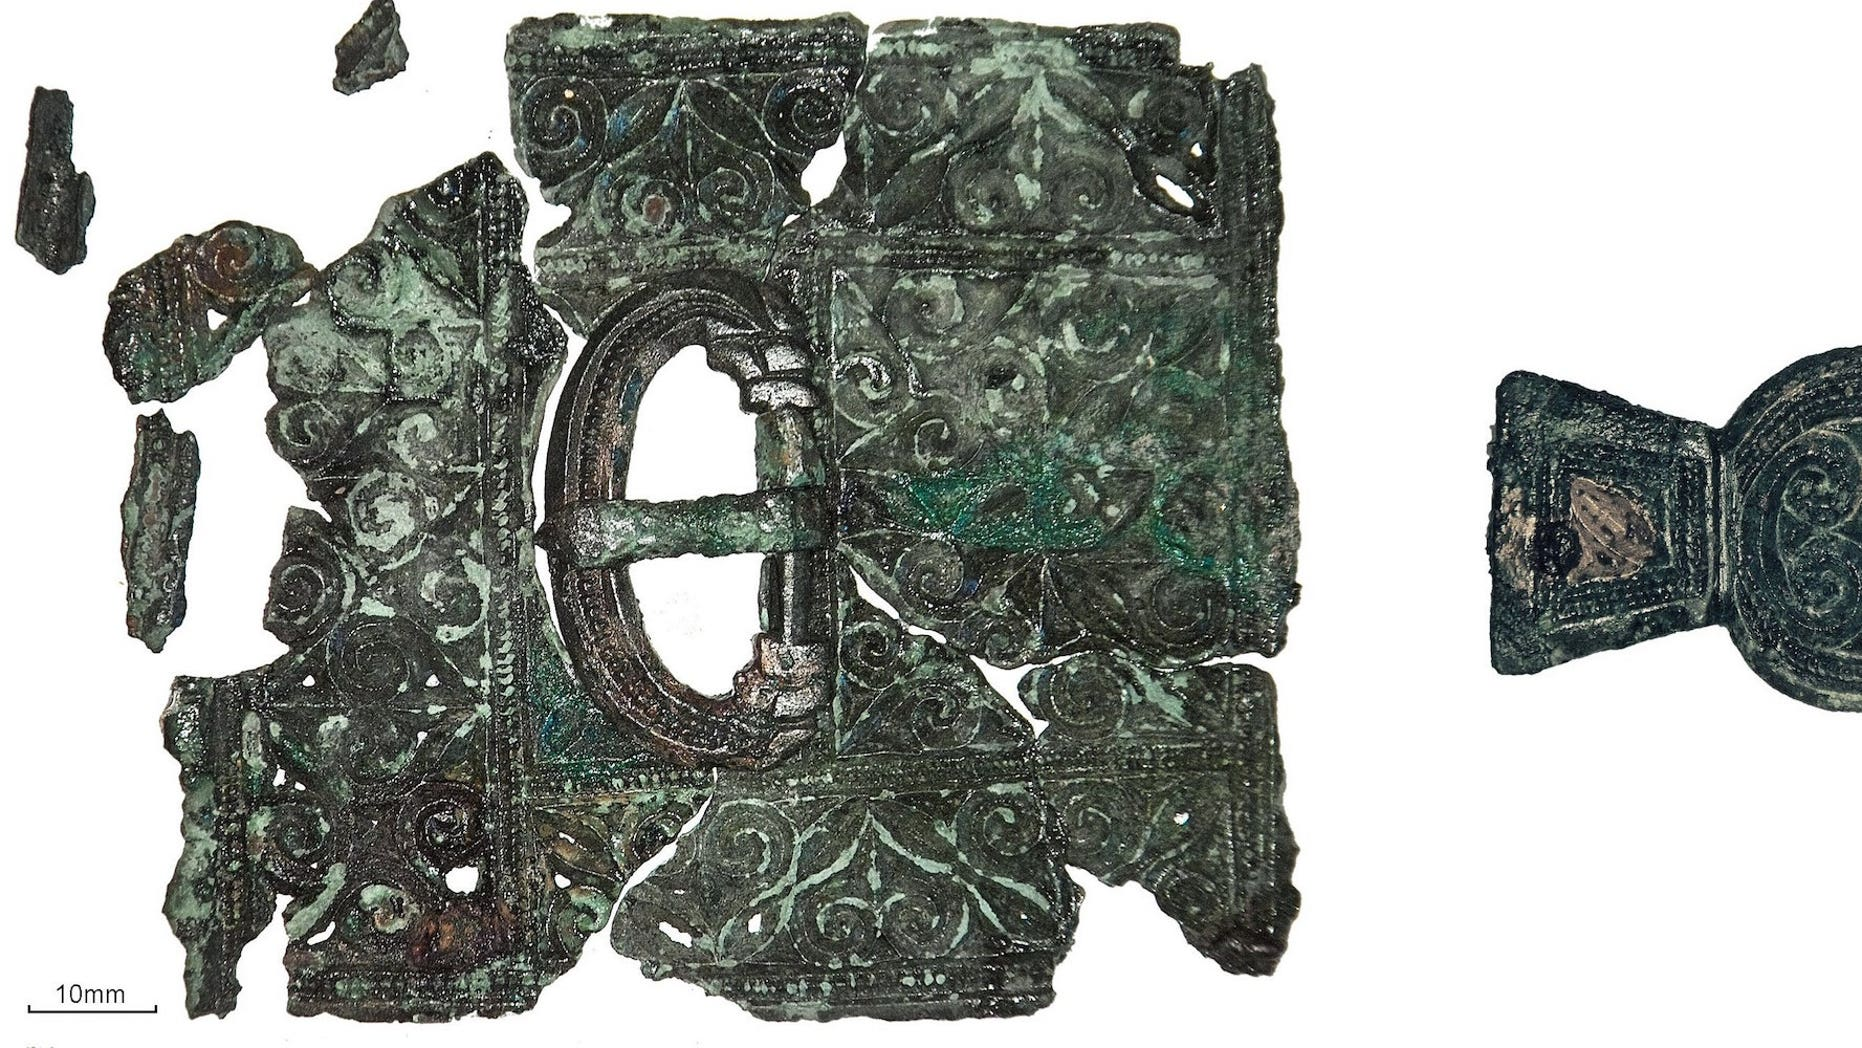 The Late Roman belt — including a buckle, belt plate and strap end — that researchers found in skeleton 23.